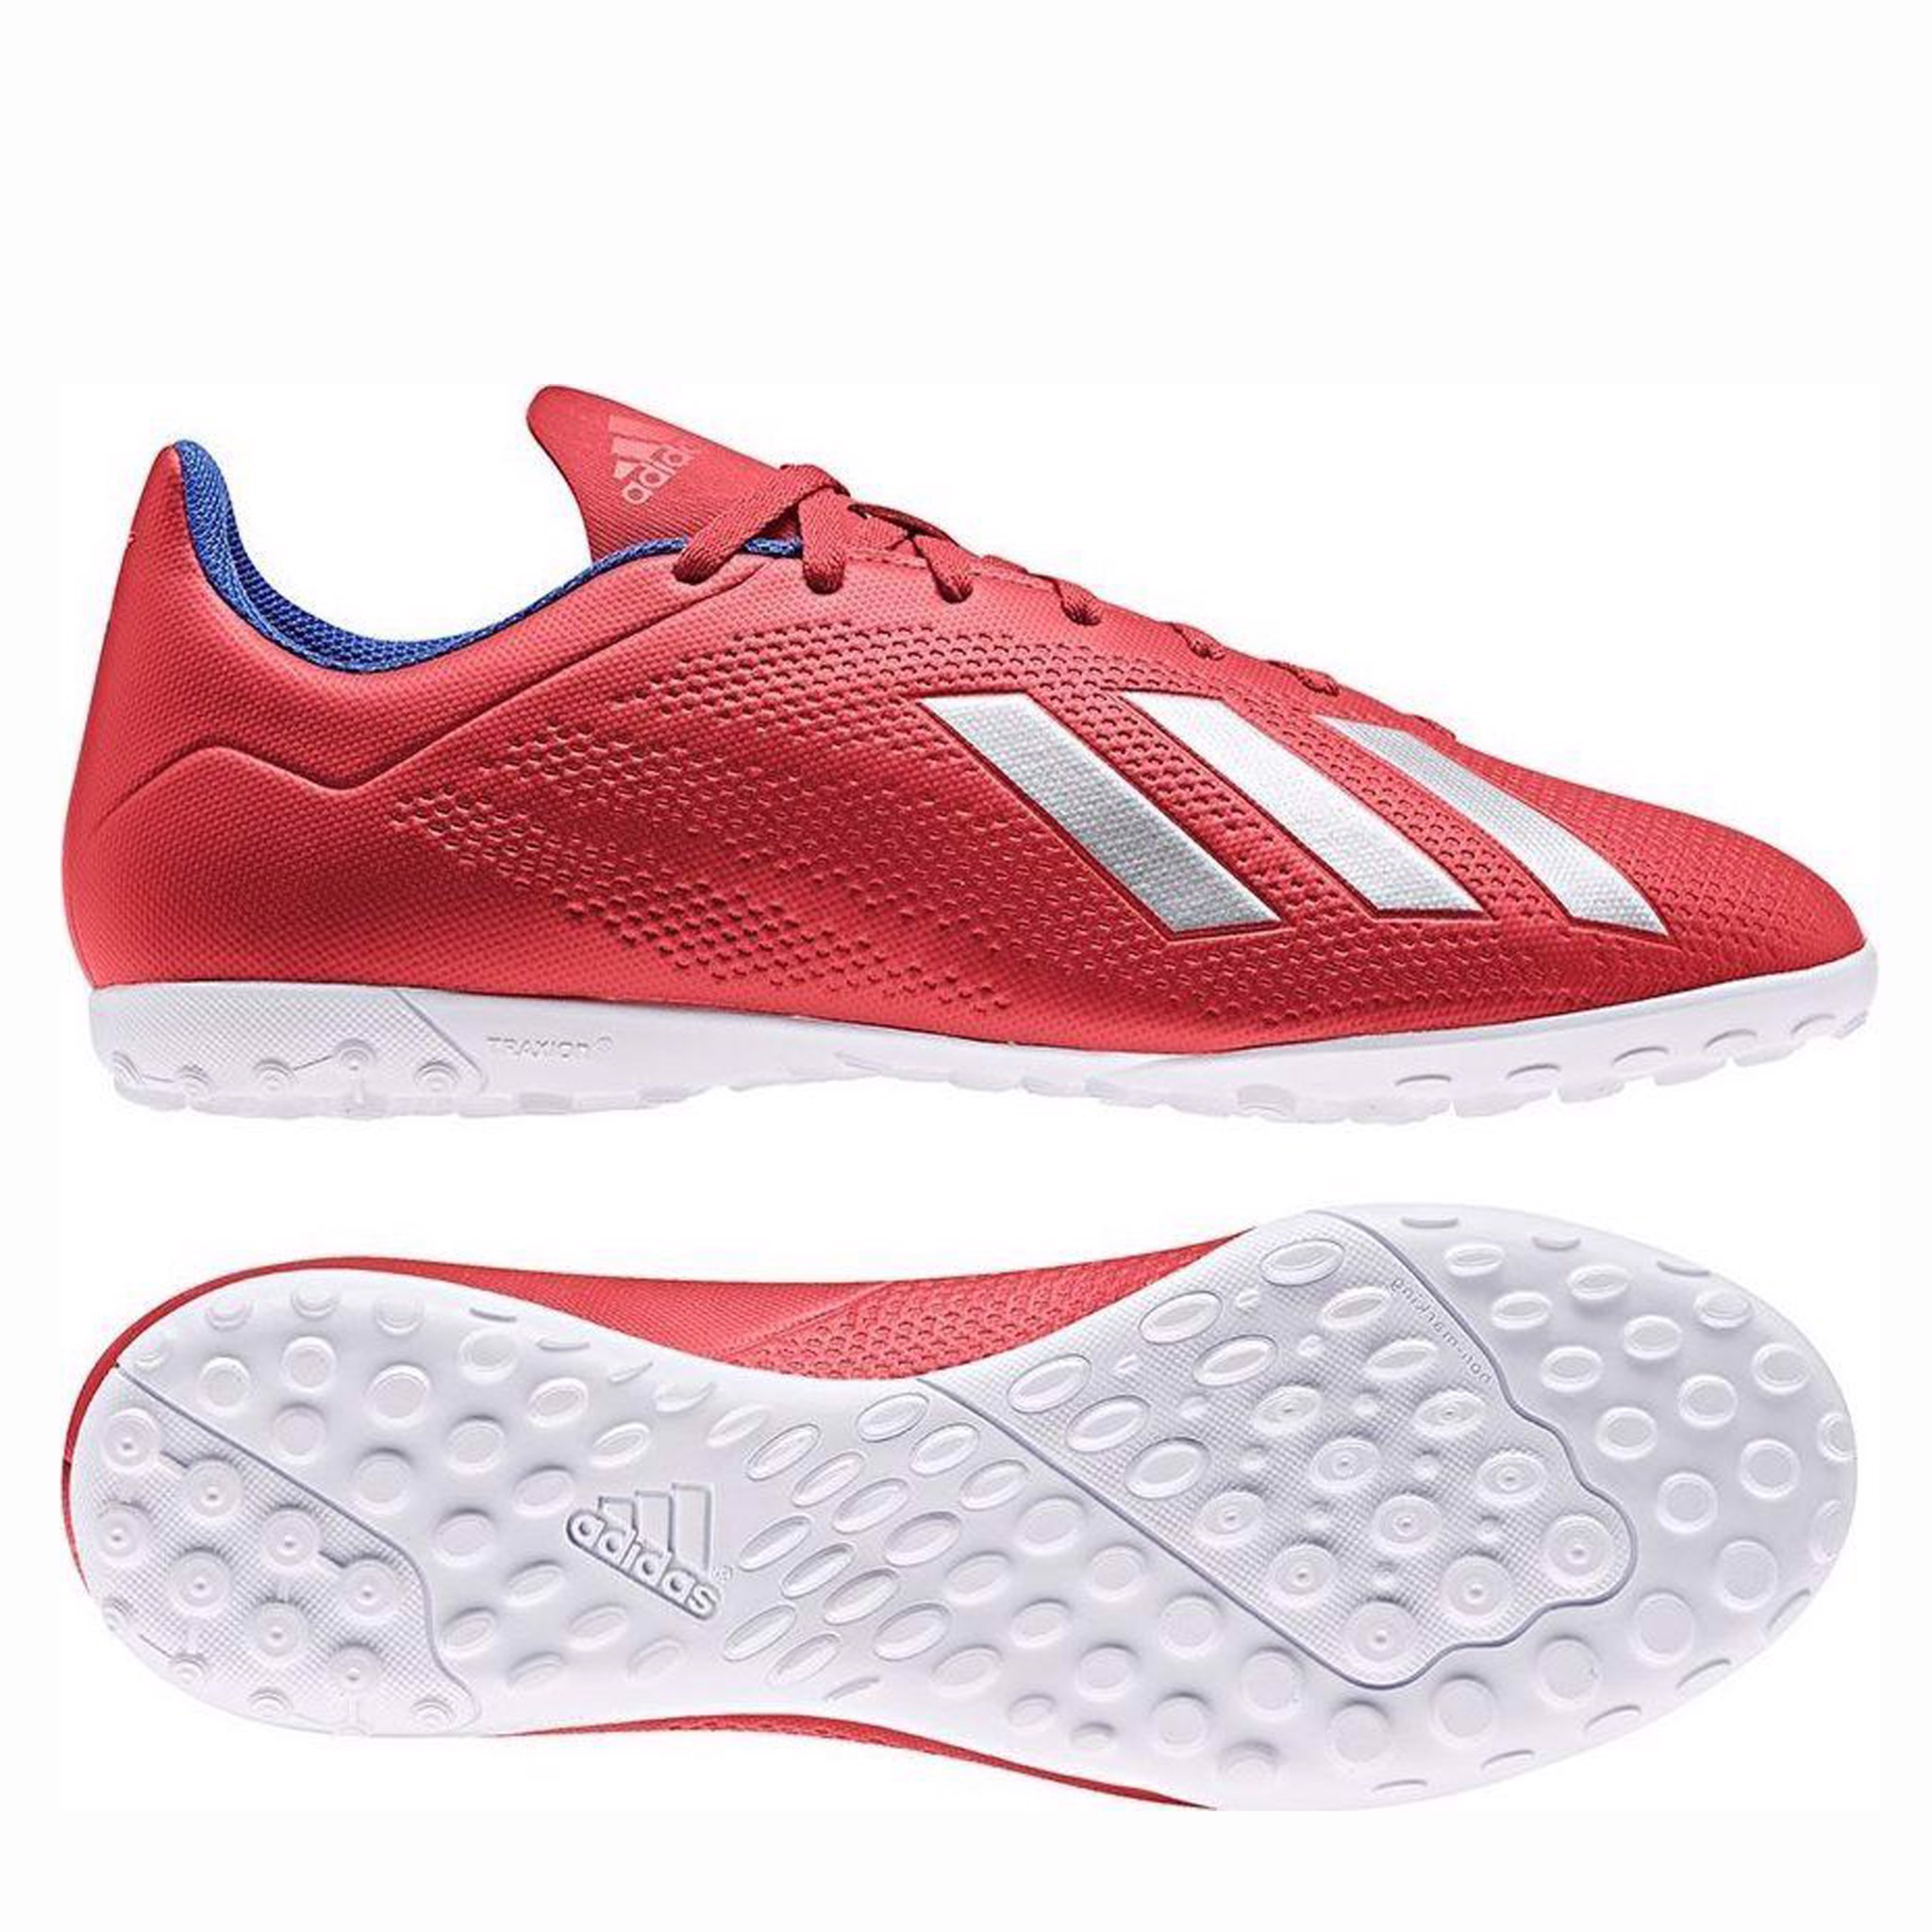 adidas X Tango 18.4 TF Exhibit - Action Red/Silver Metallic